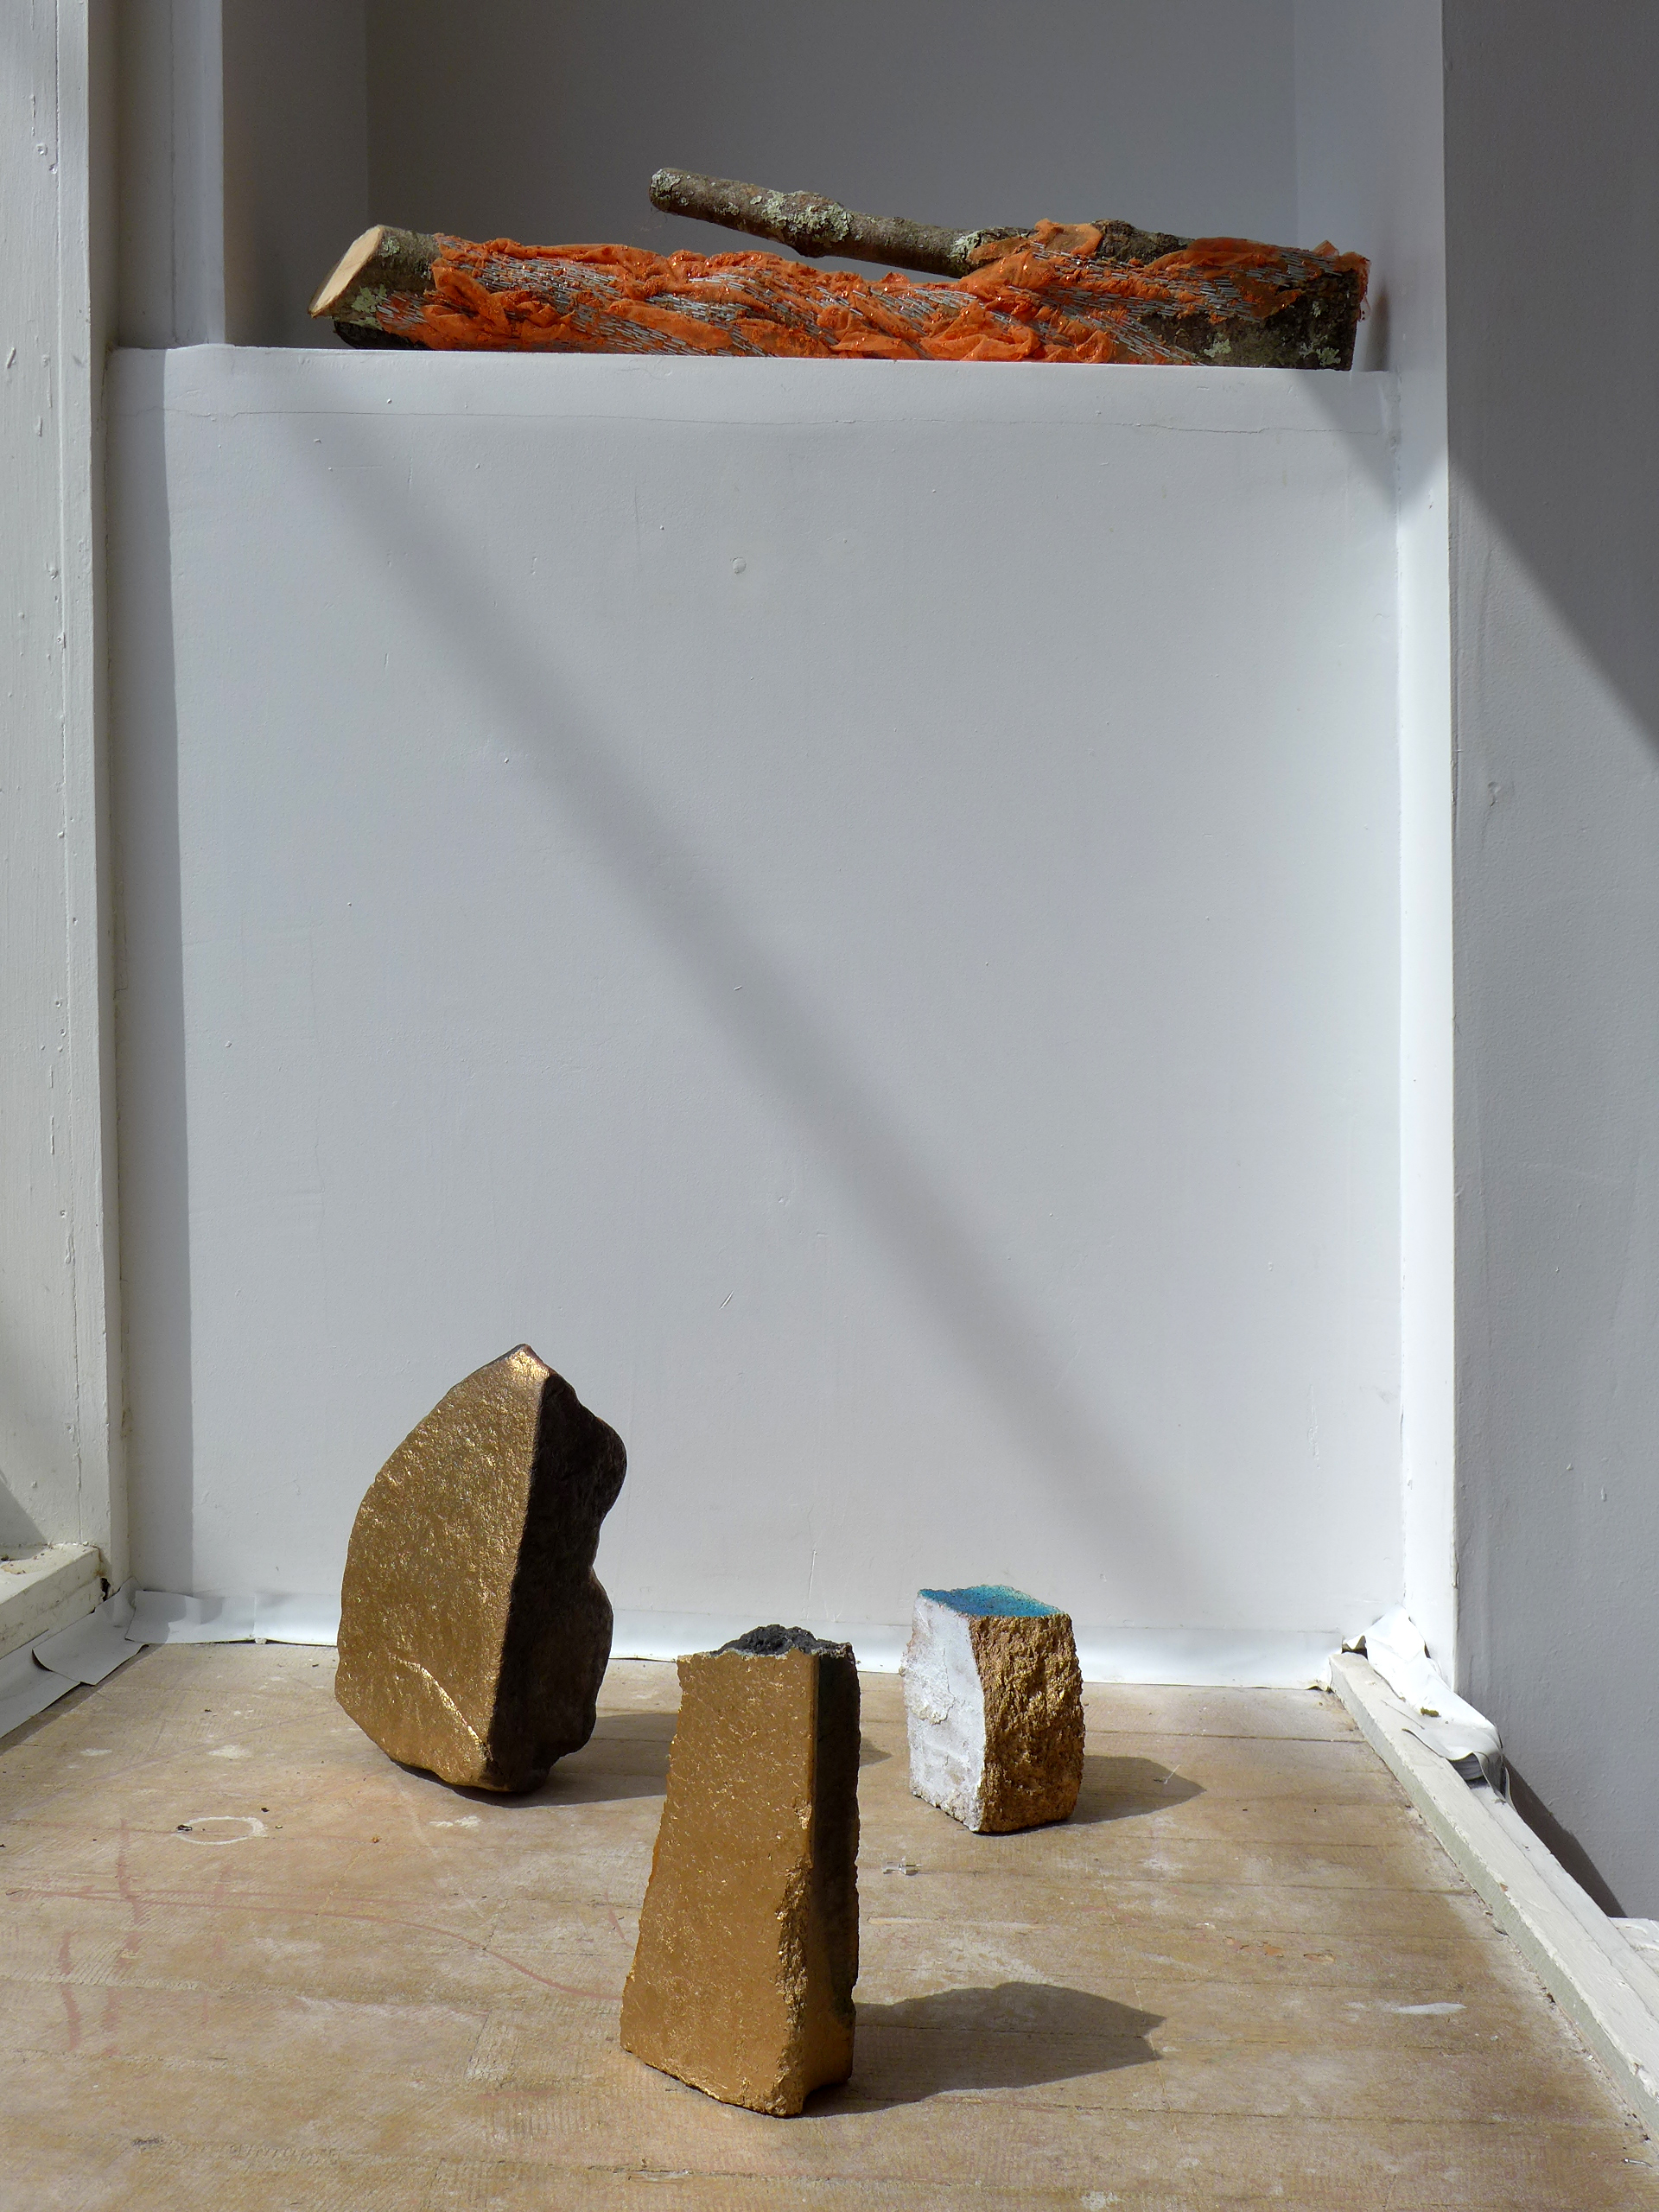 Installation view with American rocks and log by Elana Herzog